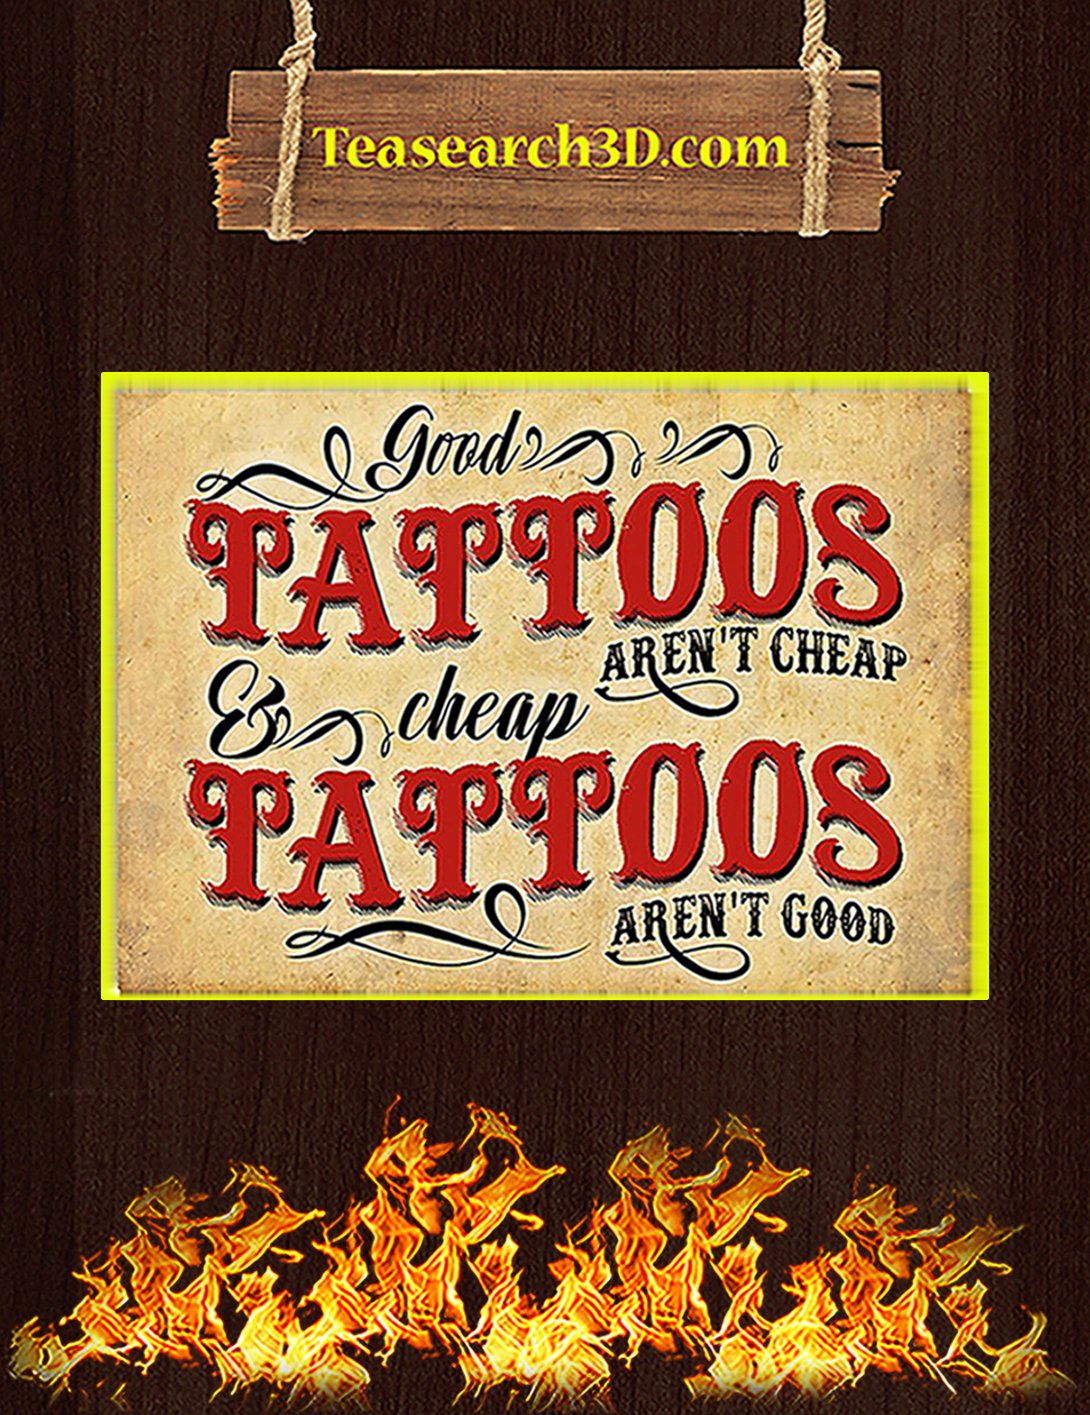 Good tattoos aren't cheap cheap tattoos aren't good poster A2